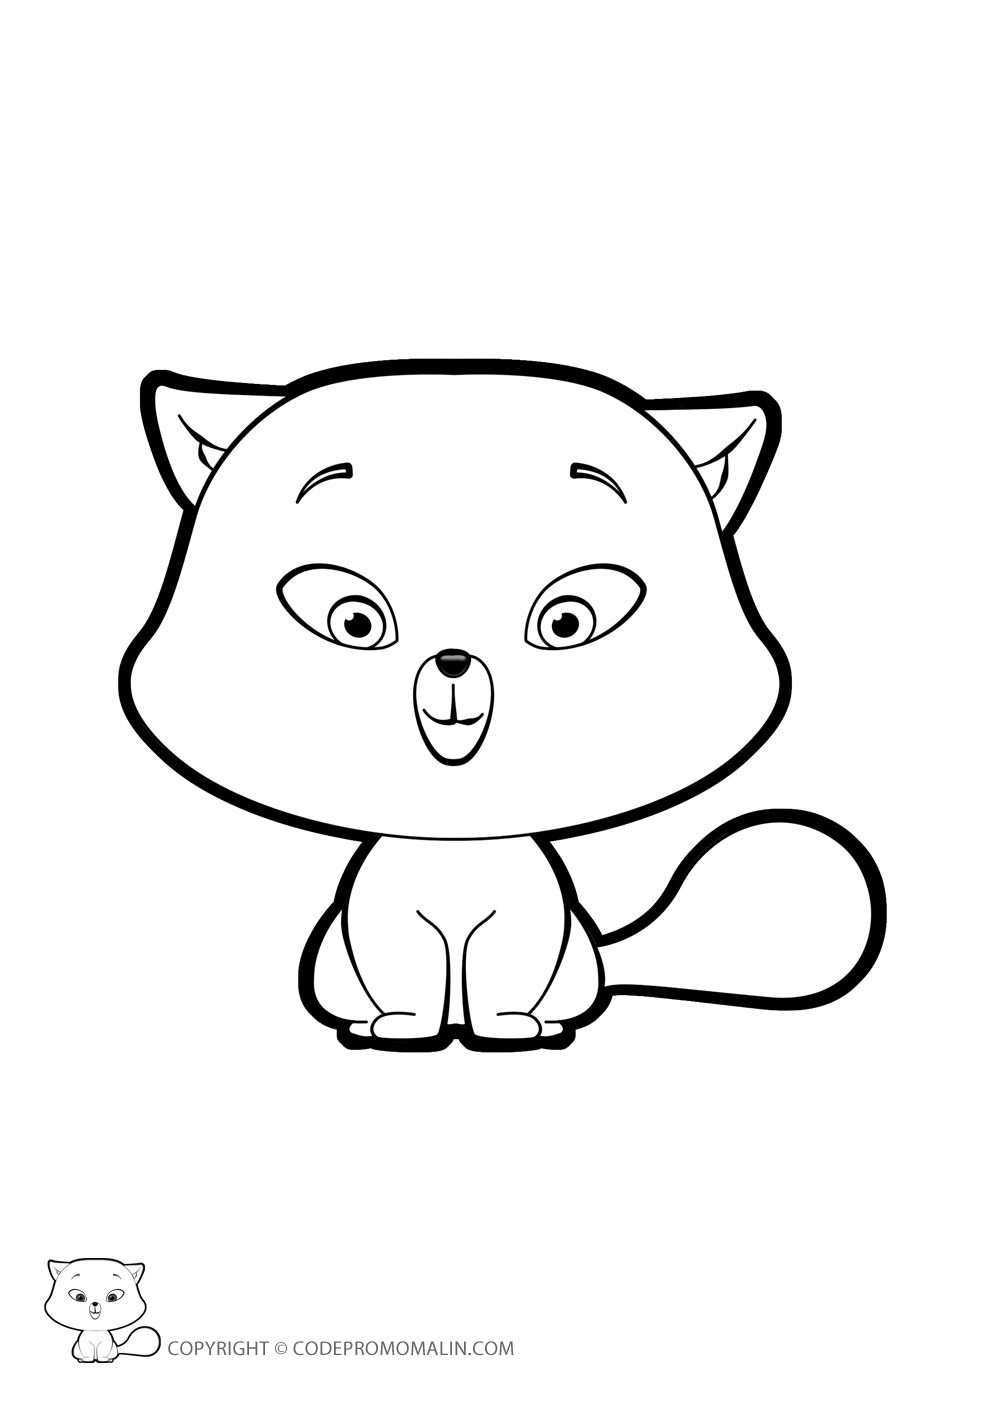 Coloriage de chat en ligne lc47 jornalagora - Coloriage de chat ...